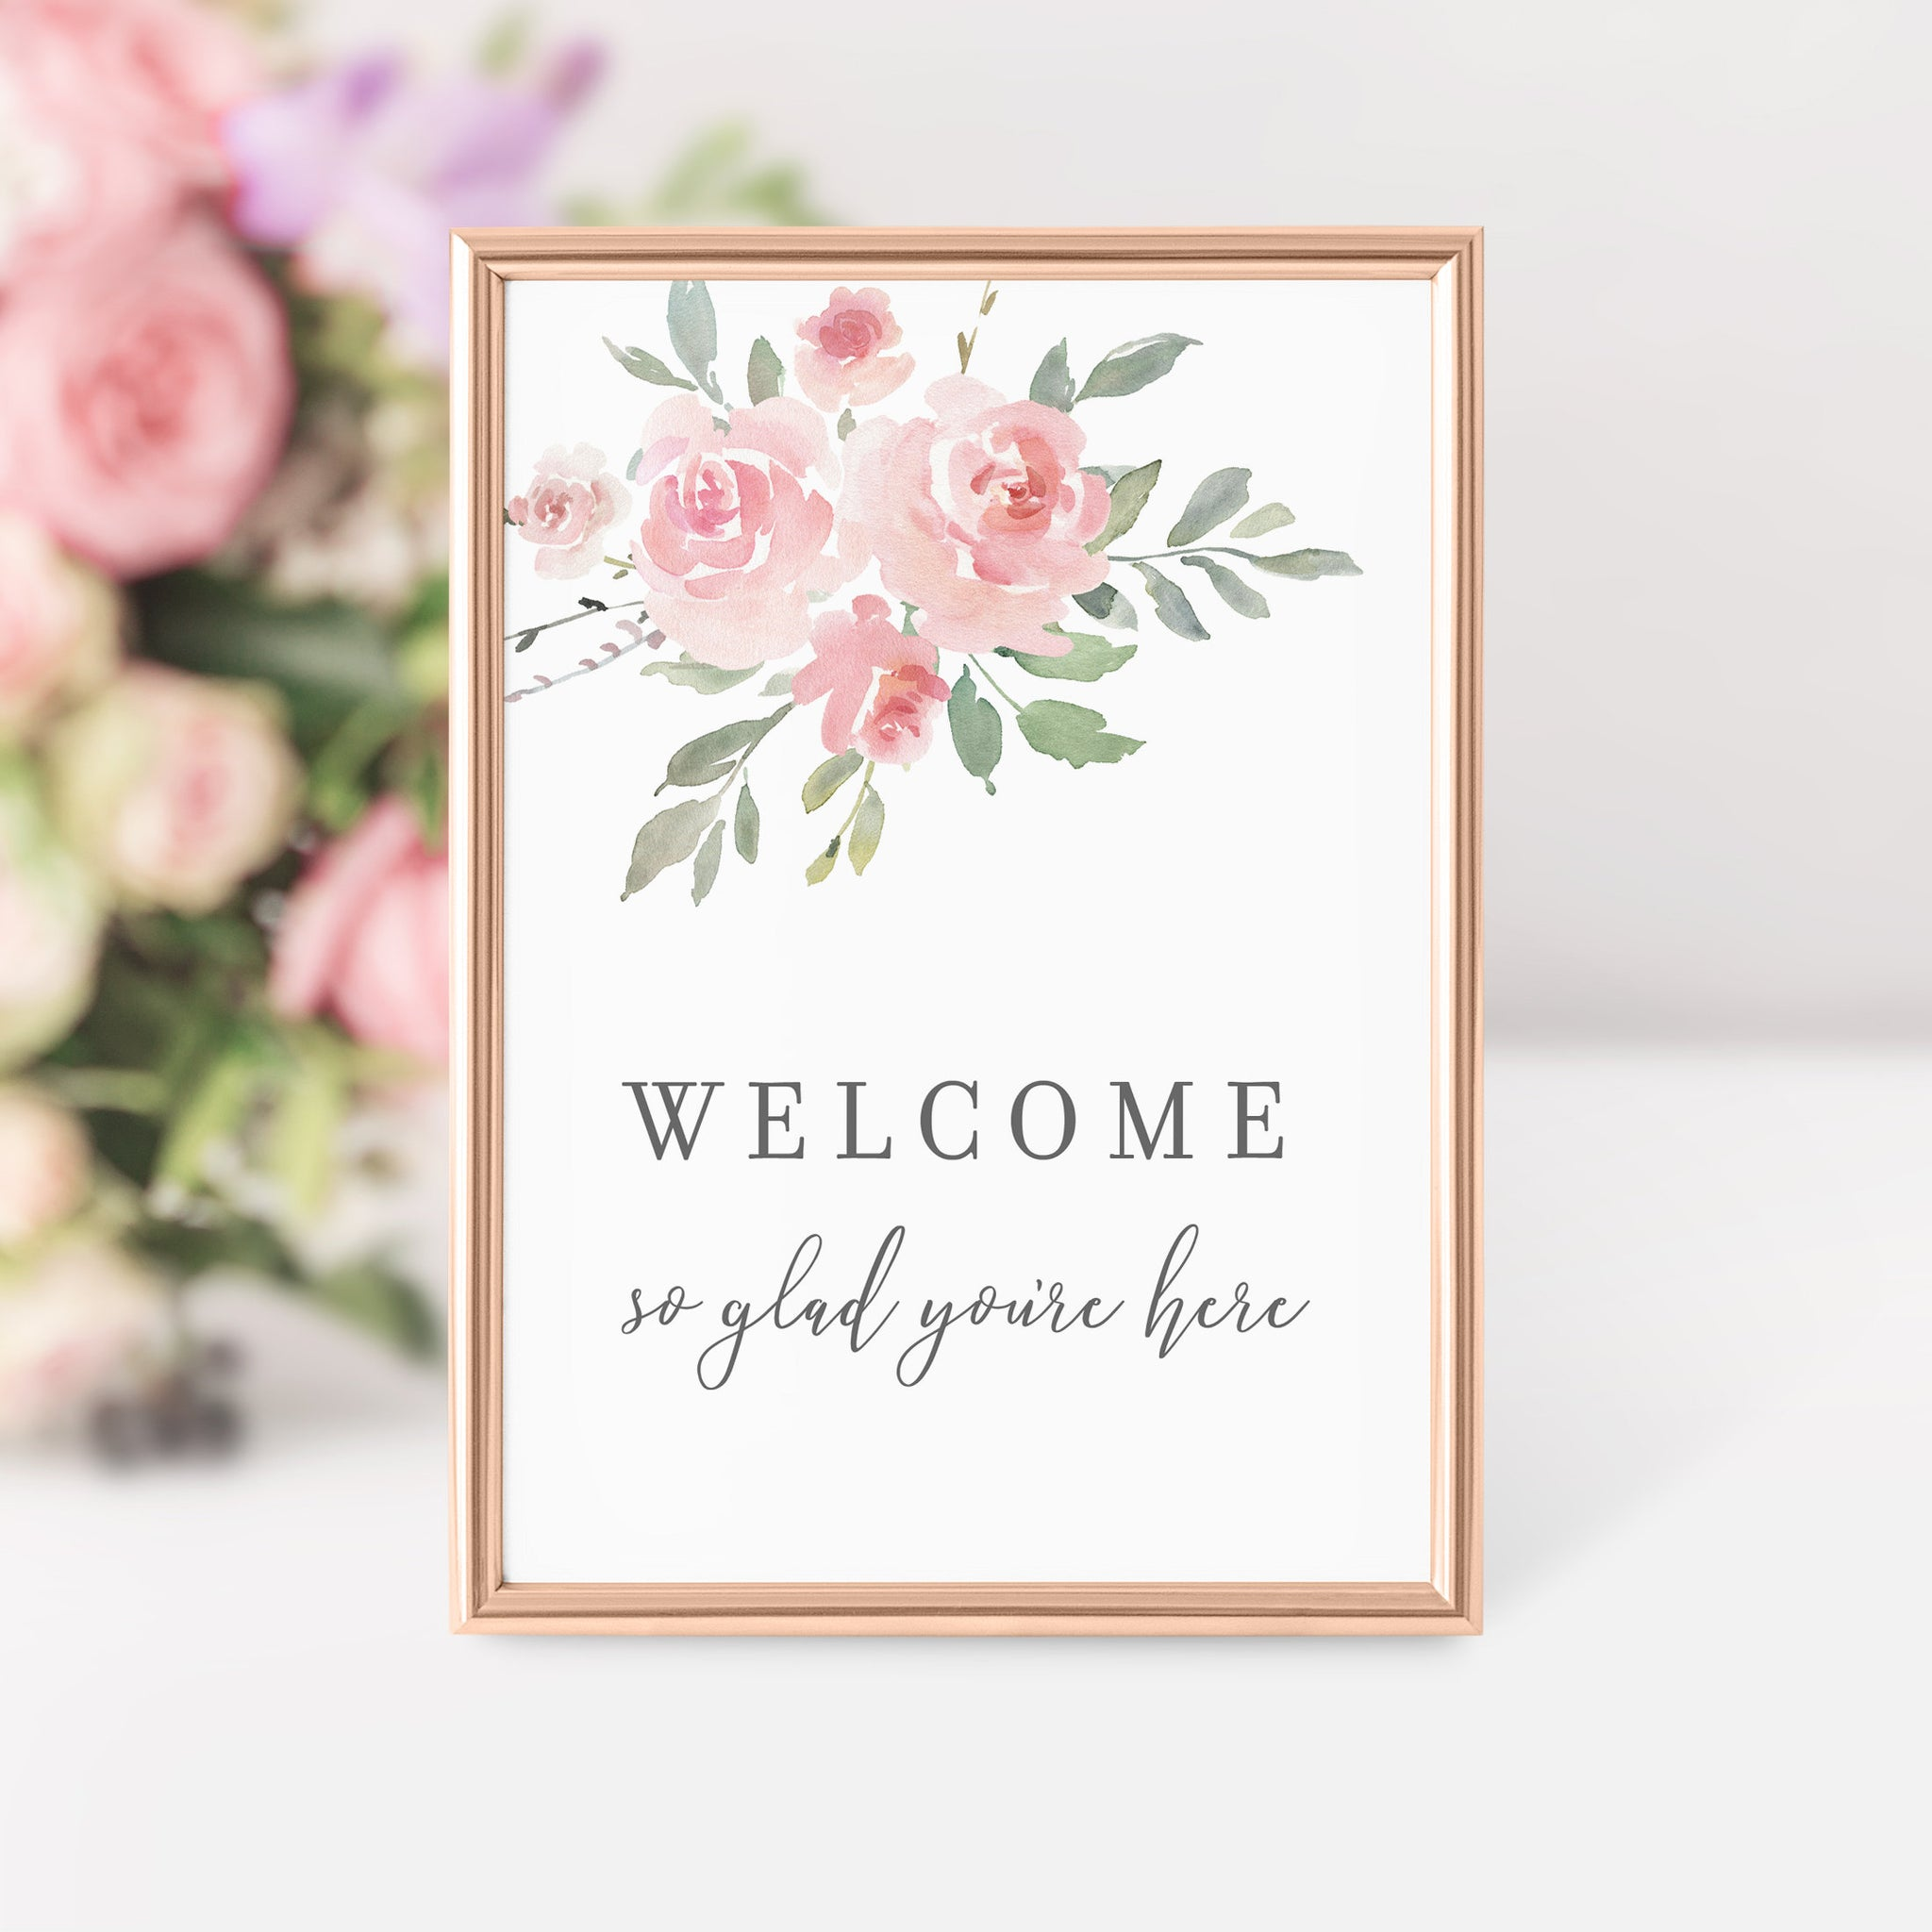 Welcome Sign Printable, Pink Bridal Shower Decorations, Birthday Party Welcome Sign, Pink Baby Shower Decor, DIGITAL DOWNLOAD - FR100 - @PlumPolkaDot